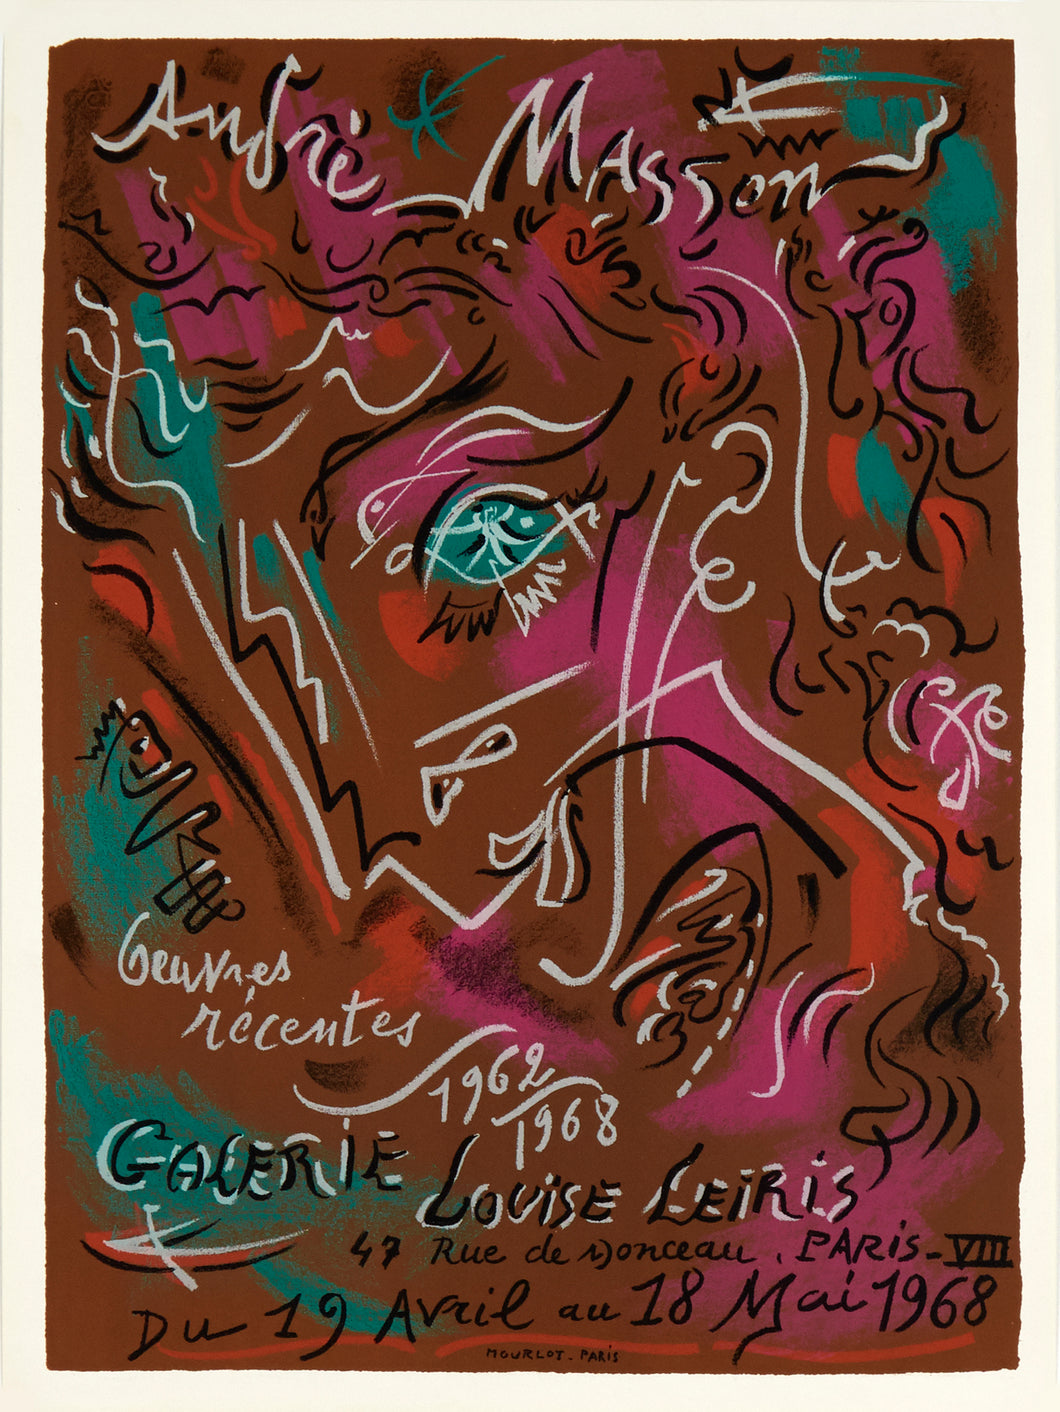 Galerie Louise Leiris by André Masson 1968